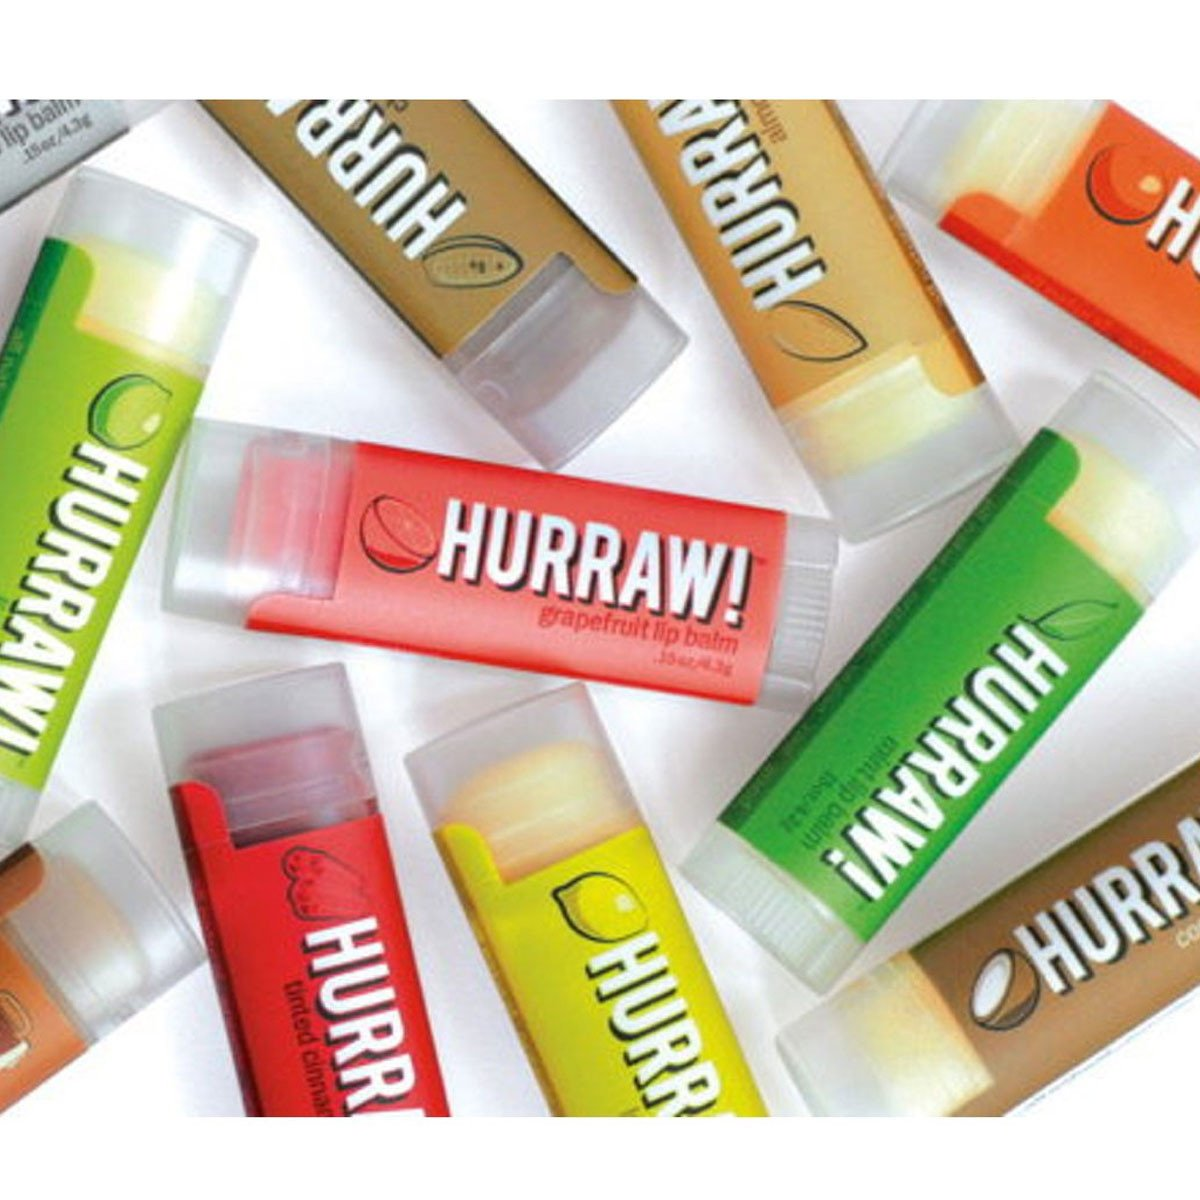 Hurraw Organic and Natural Lip Balm 4.3g Hurraw Lip Balms and Treatments at Little Earth Nest Eco Shop